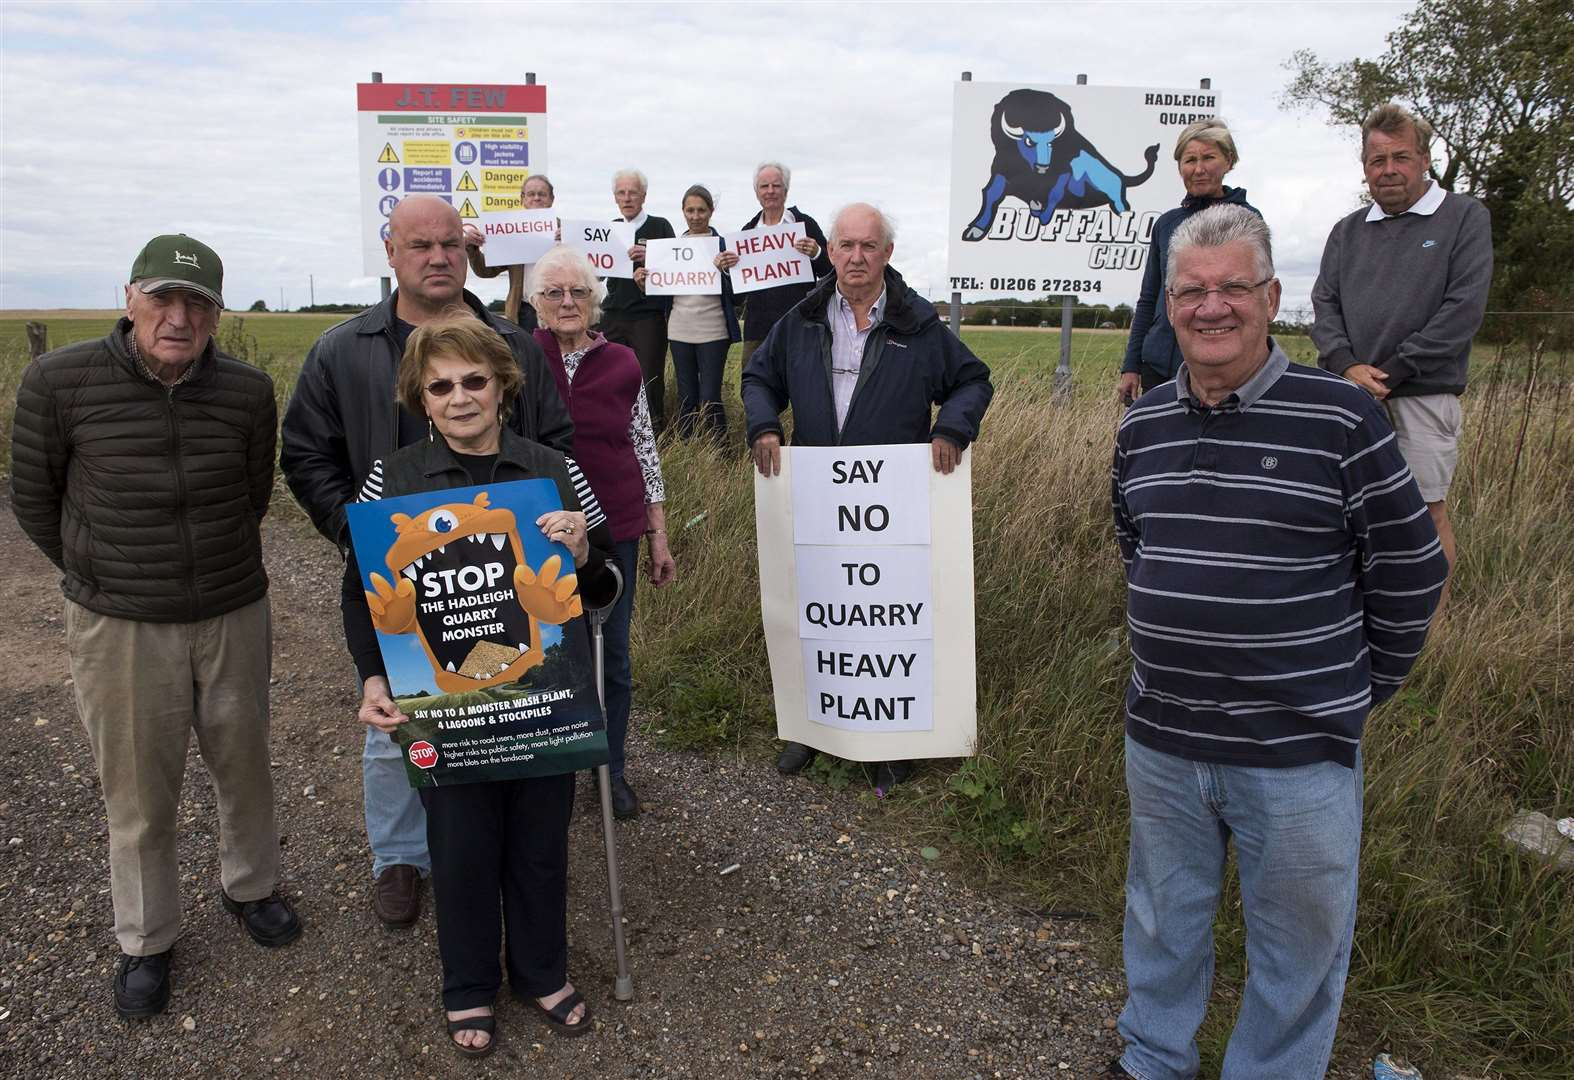 Campaigners raise safety fears over plans for ten-fold rise in HGV volume at Hadleigh quarry